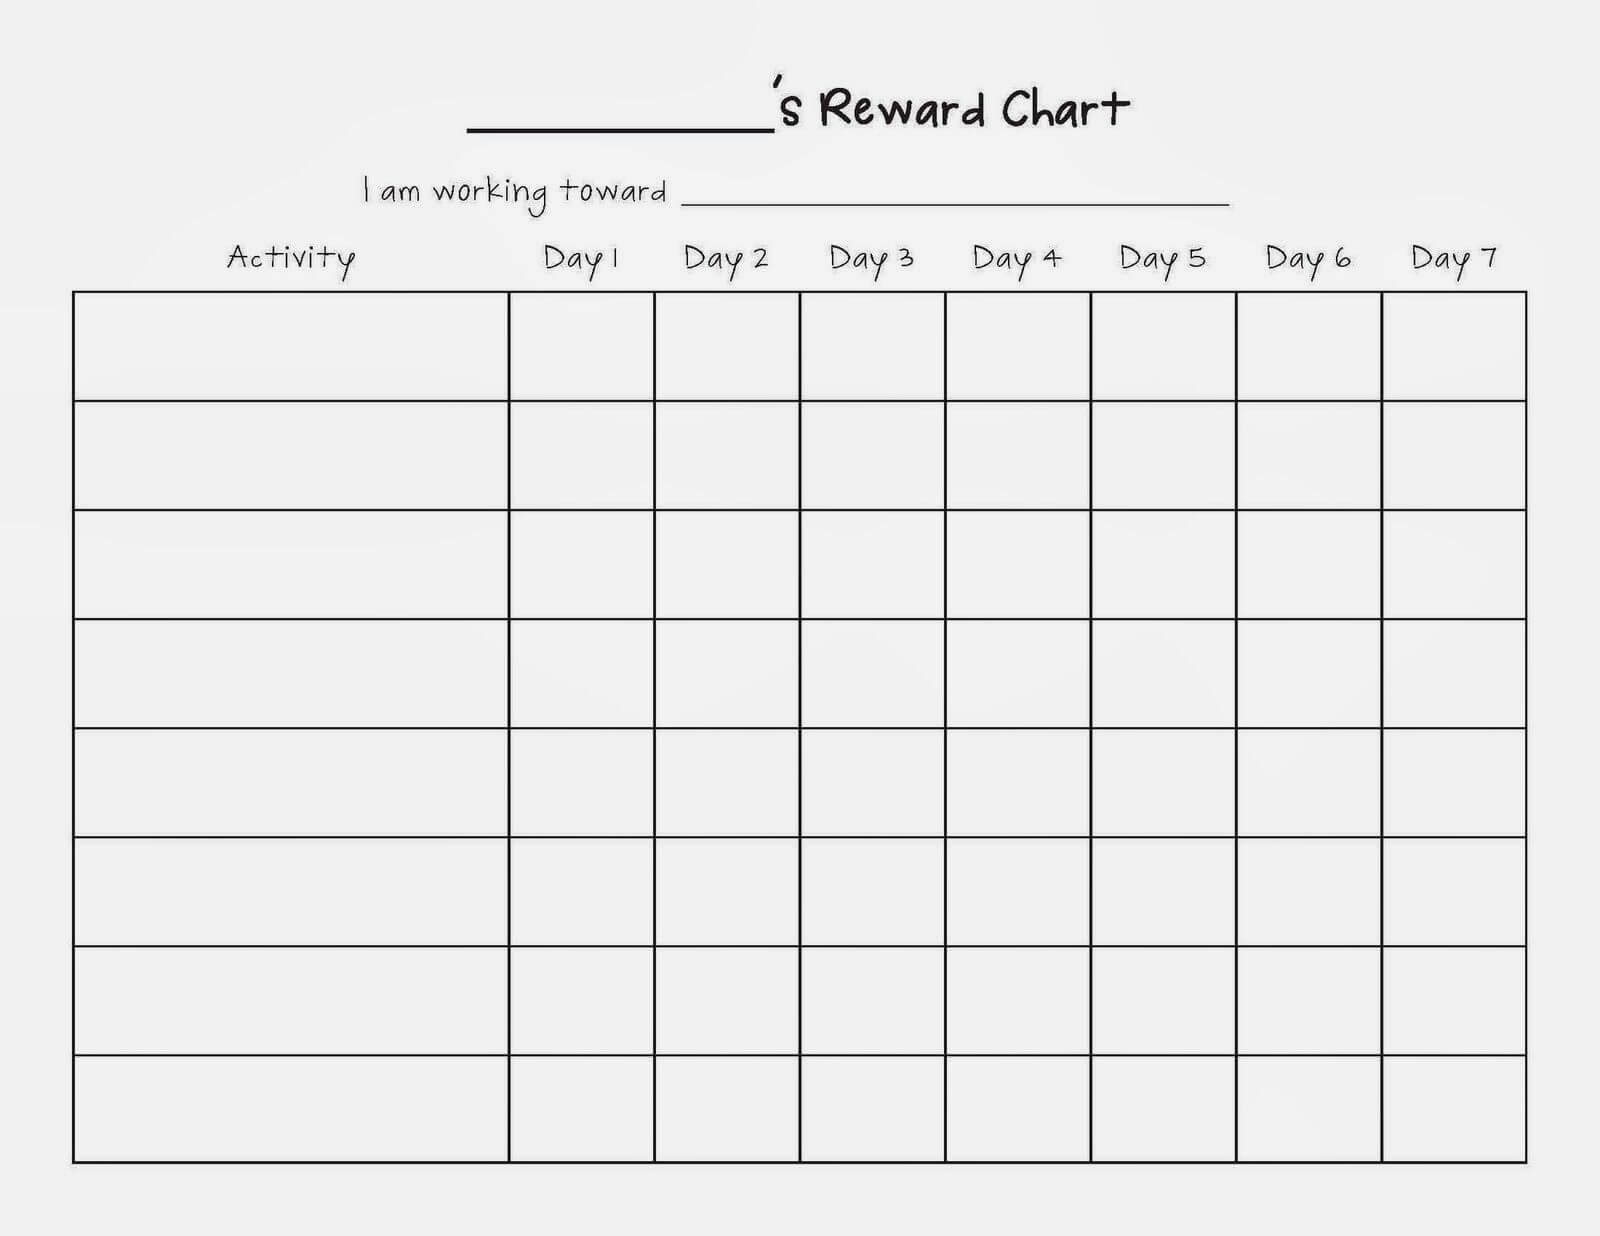 Image Result For Blank Sticker Charts | Reward Chart Inside Blank Reward Chart Template